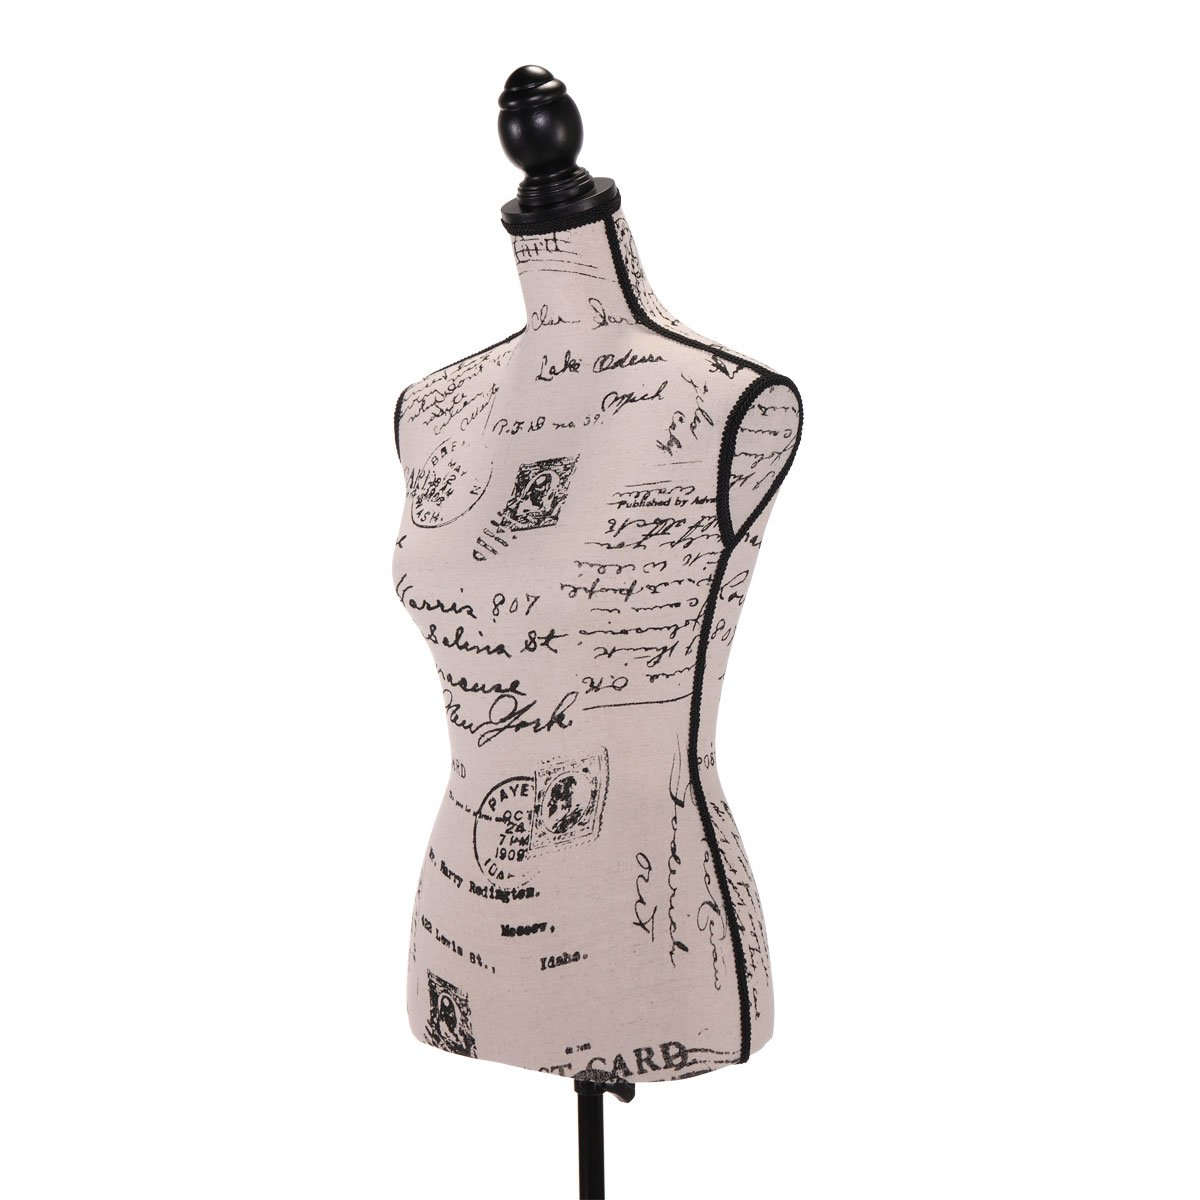 JAXPETY Female Mannequin Torso Clothing Display W//Black Tripod Stand New Mix Color Digital